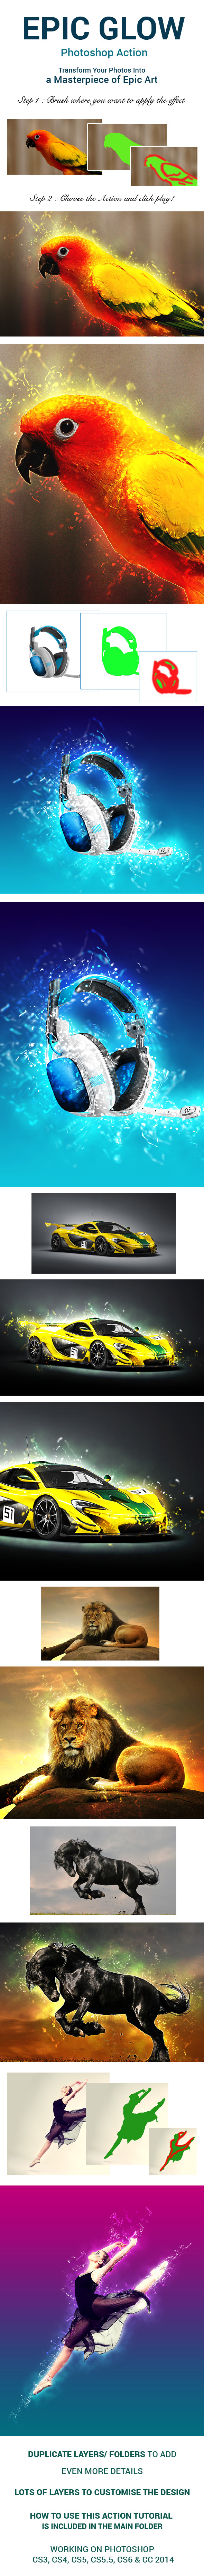 Epic Glow Photoshop Action - Photo Effects Actions